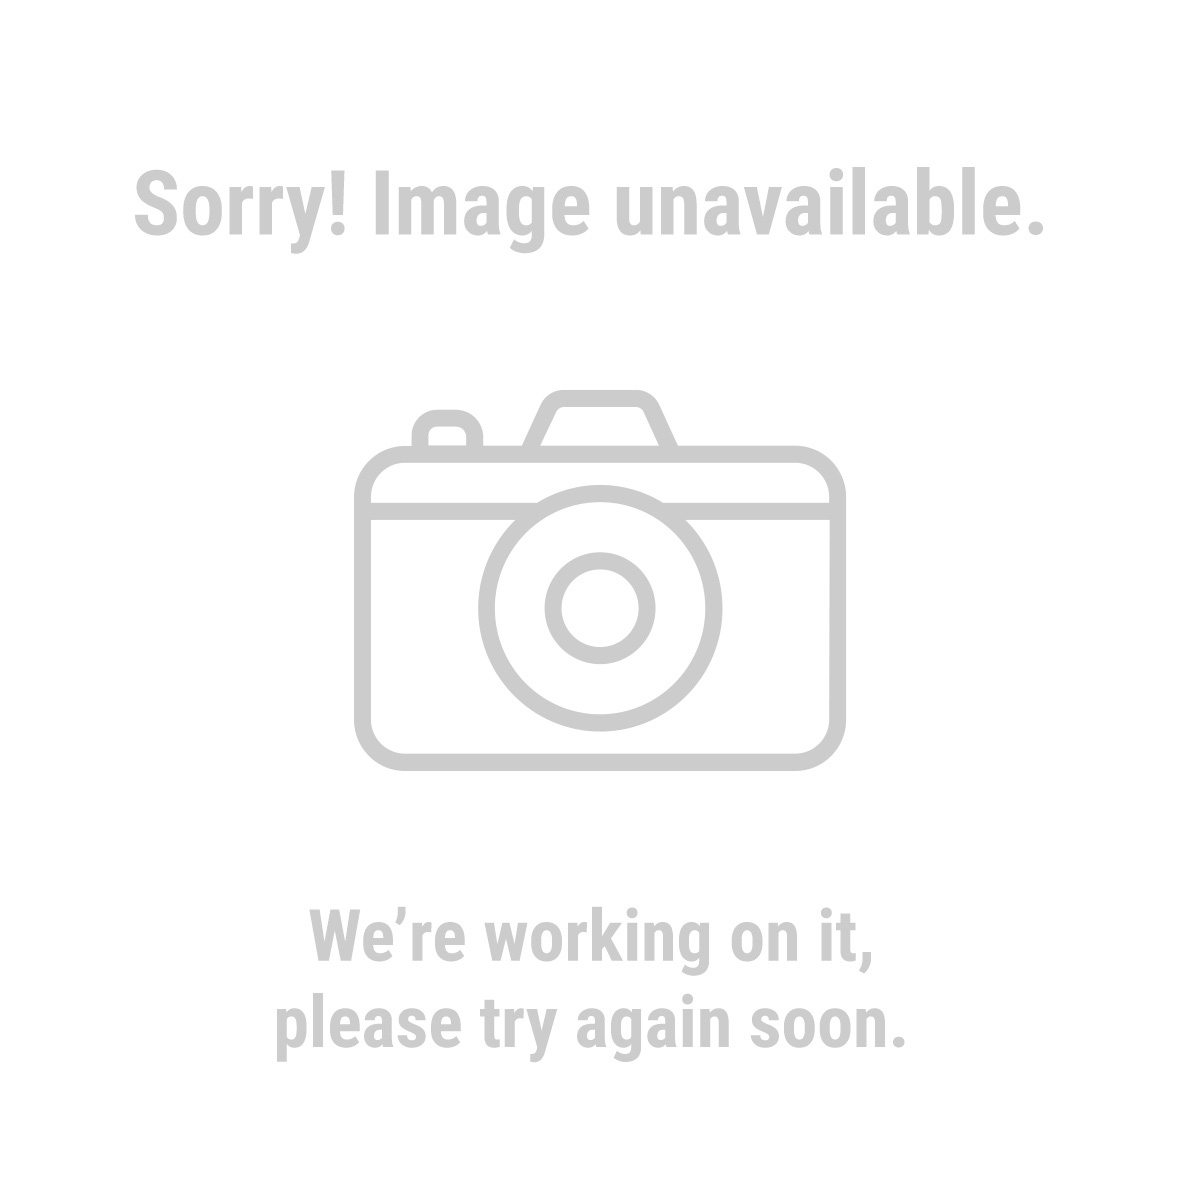 Haul-Master® 61920 400 lb. Capacity 6 ft. x 1 in. Heavy Duty Cam Buckle Tie Downs 4 Pc